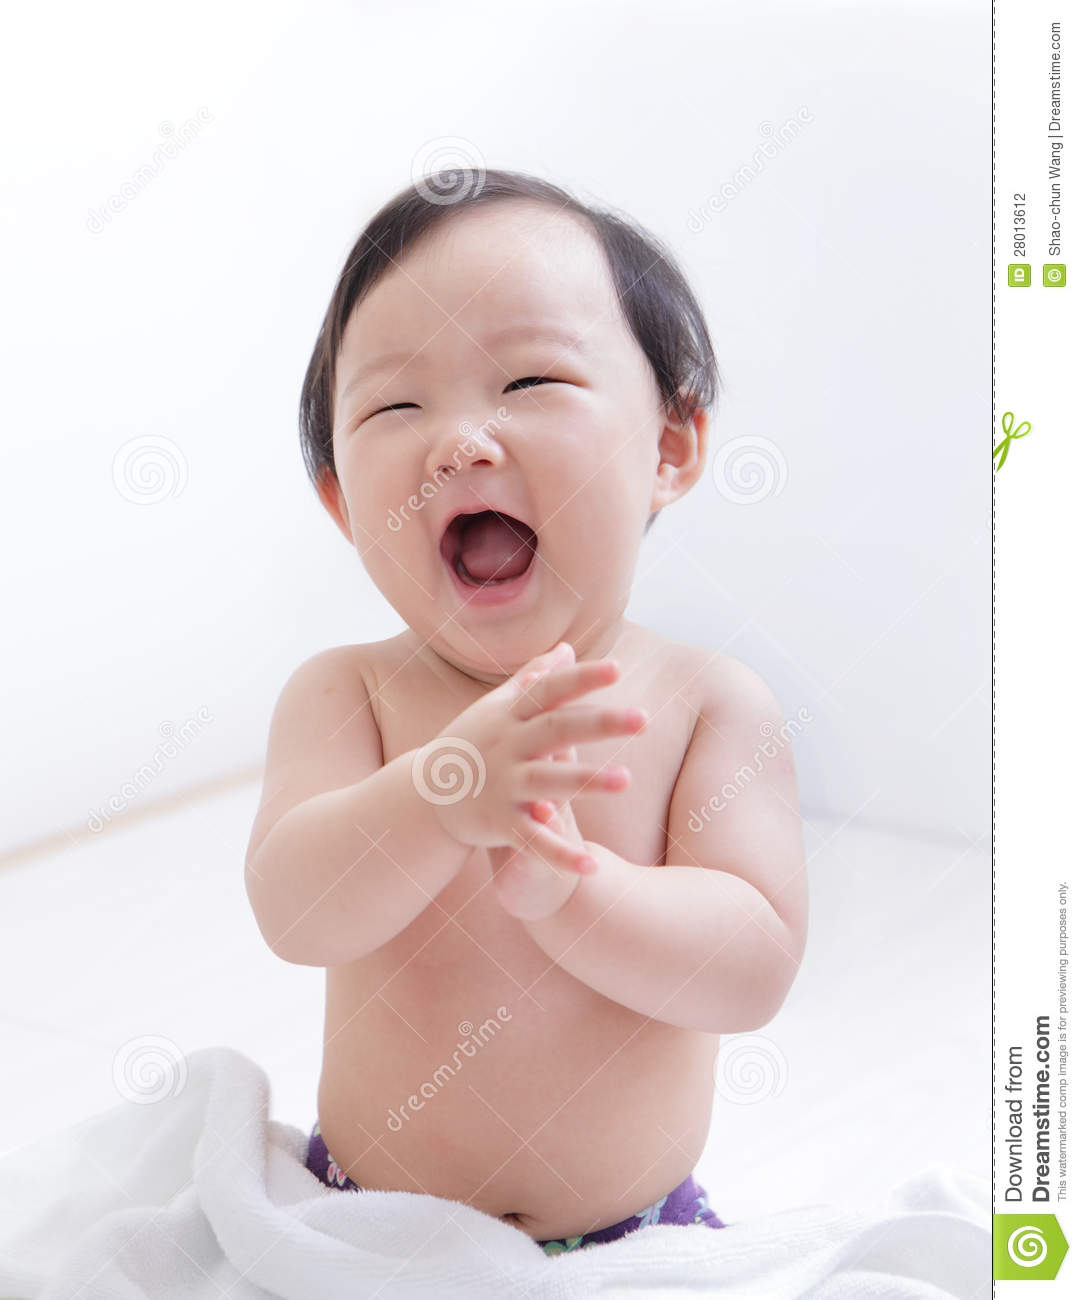 Excited Cute Baby Smile Face Stock Photo - Image of hands ...